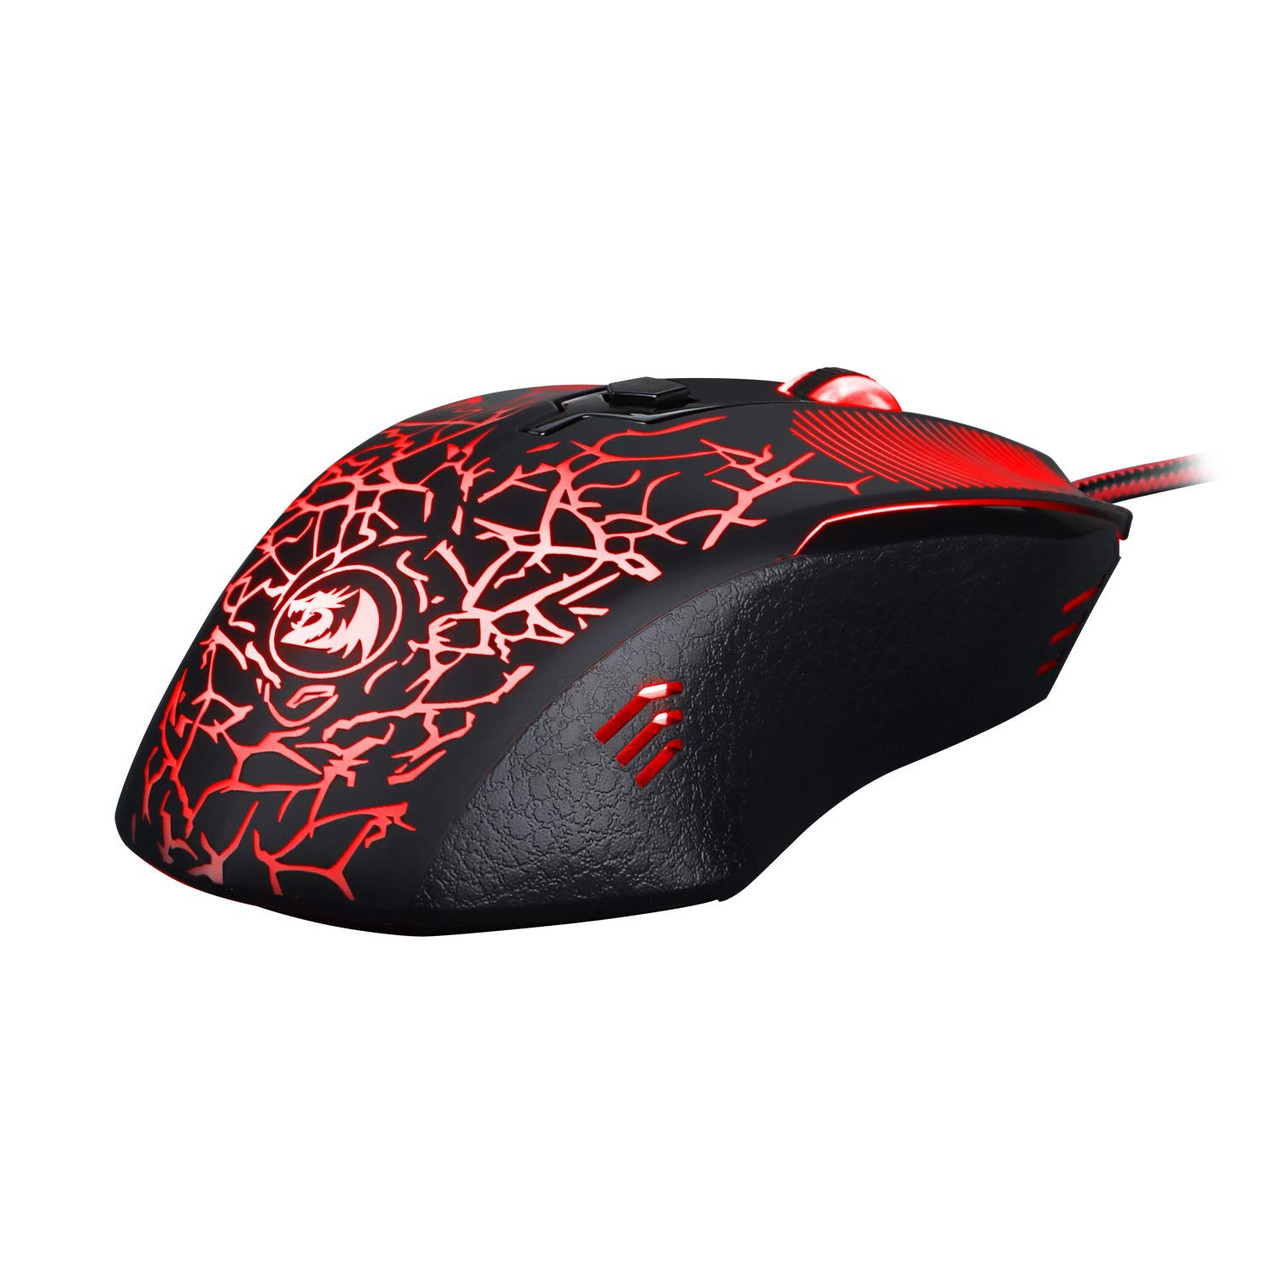 Redragon M608 inquisitor Wired Gaming Mouse Ergonomic LED Back Light PC Laptop Computer Gaming Mouse 4 LED Colors 2 Side Buttons 3200 DPI User Programmable